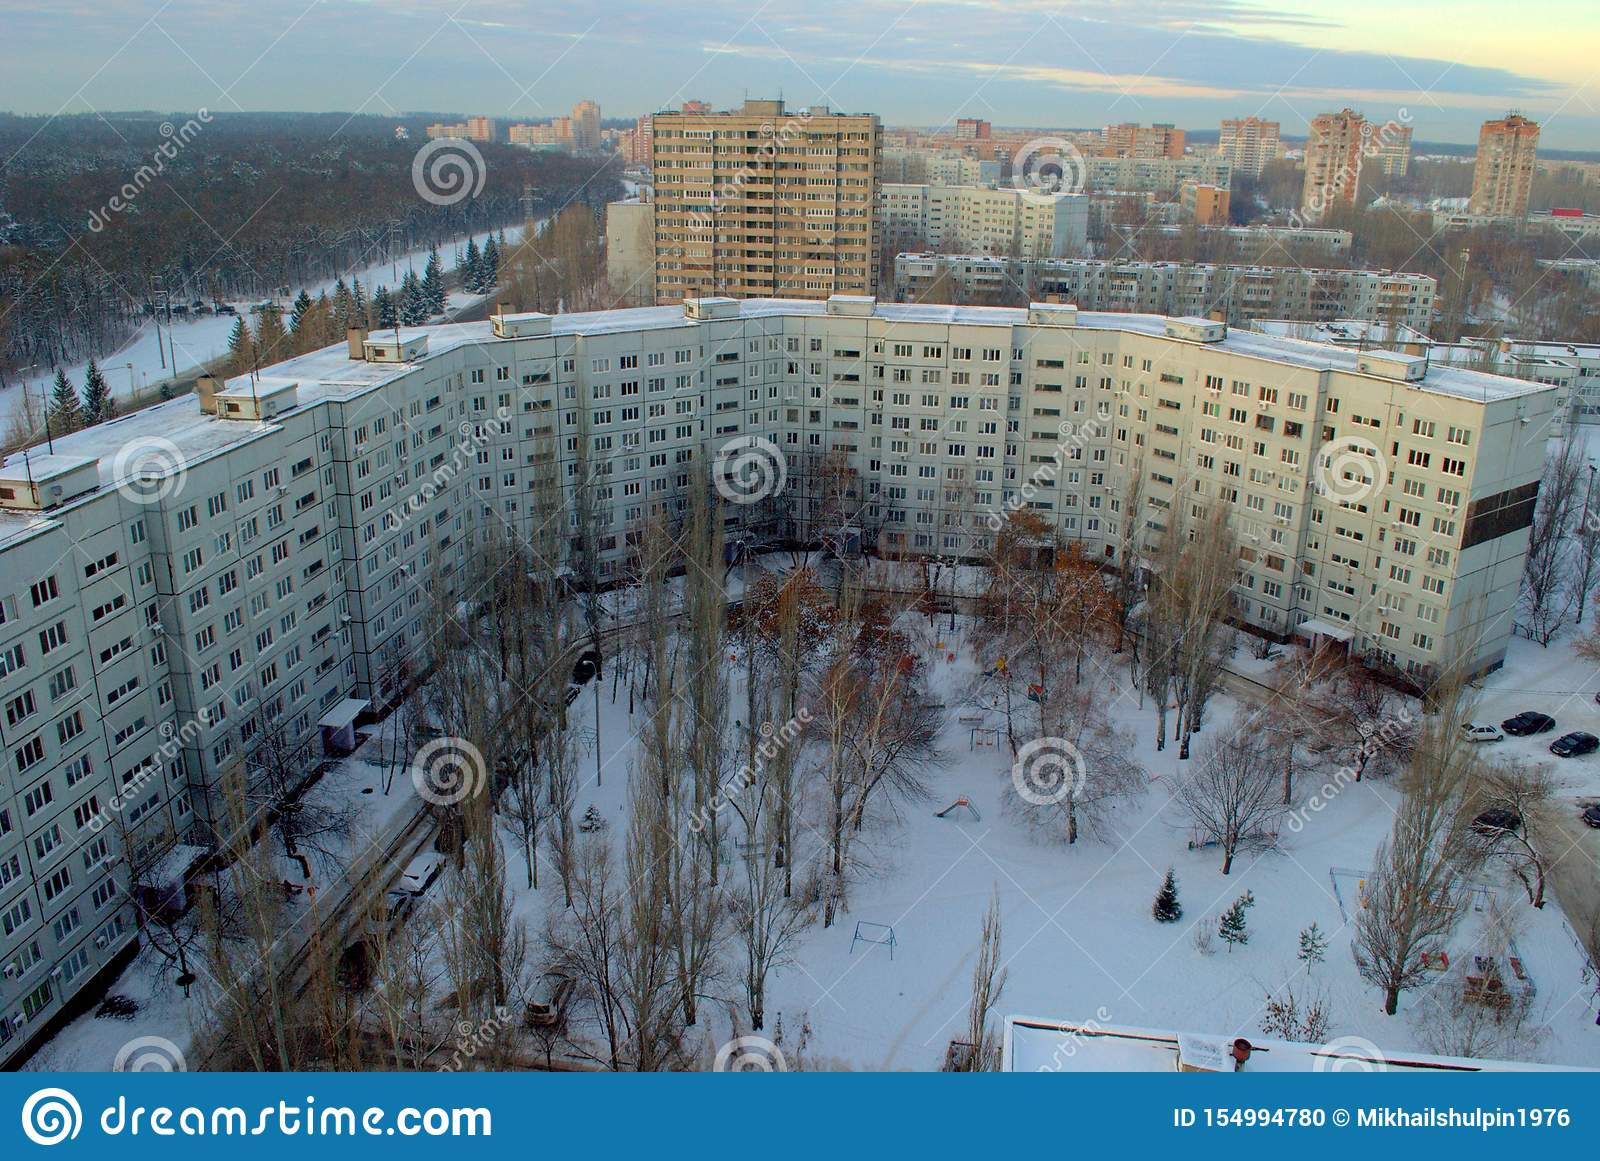 Winter morning in the Central District of Tolyatti overlooking one of the many 9-storey residential buildings.